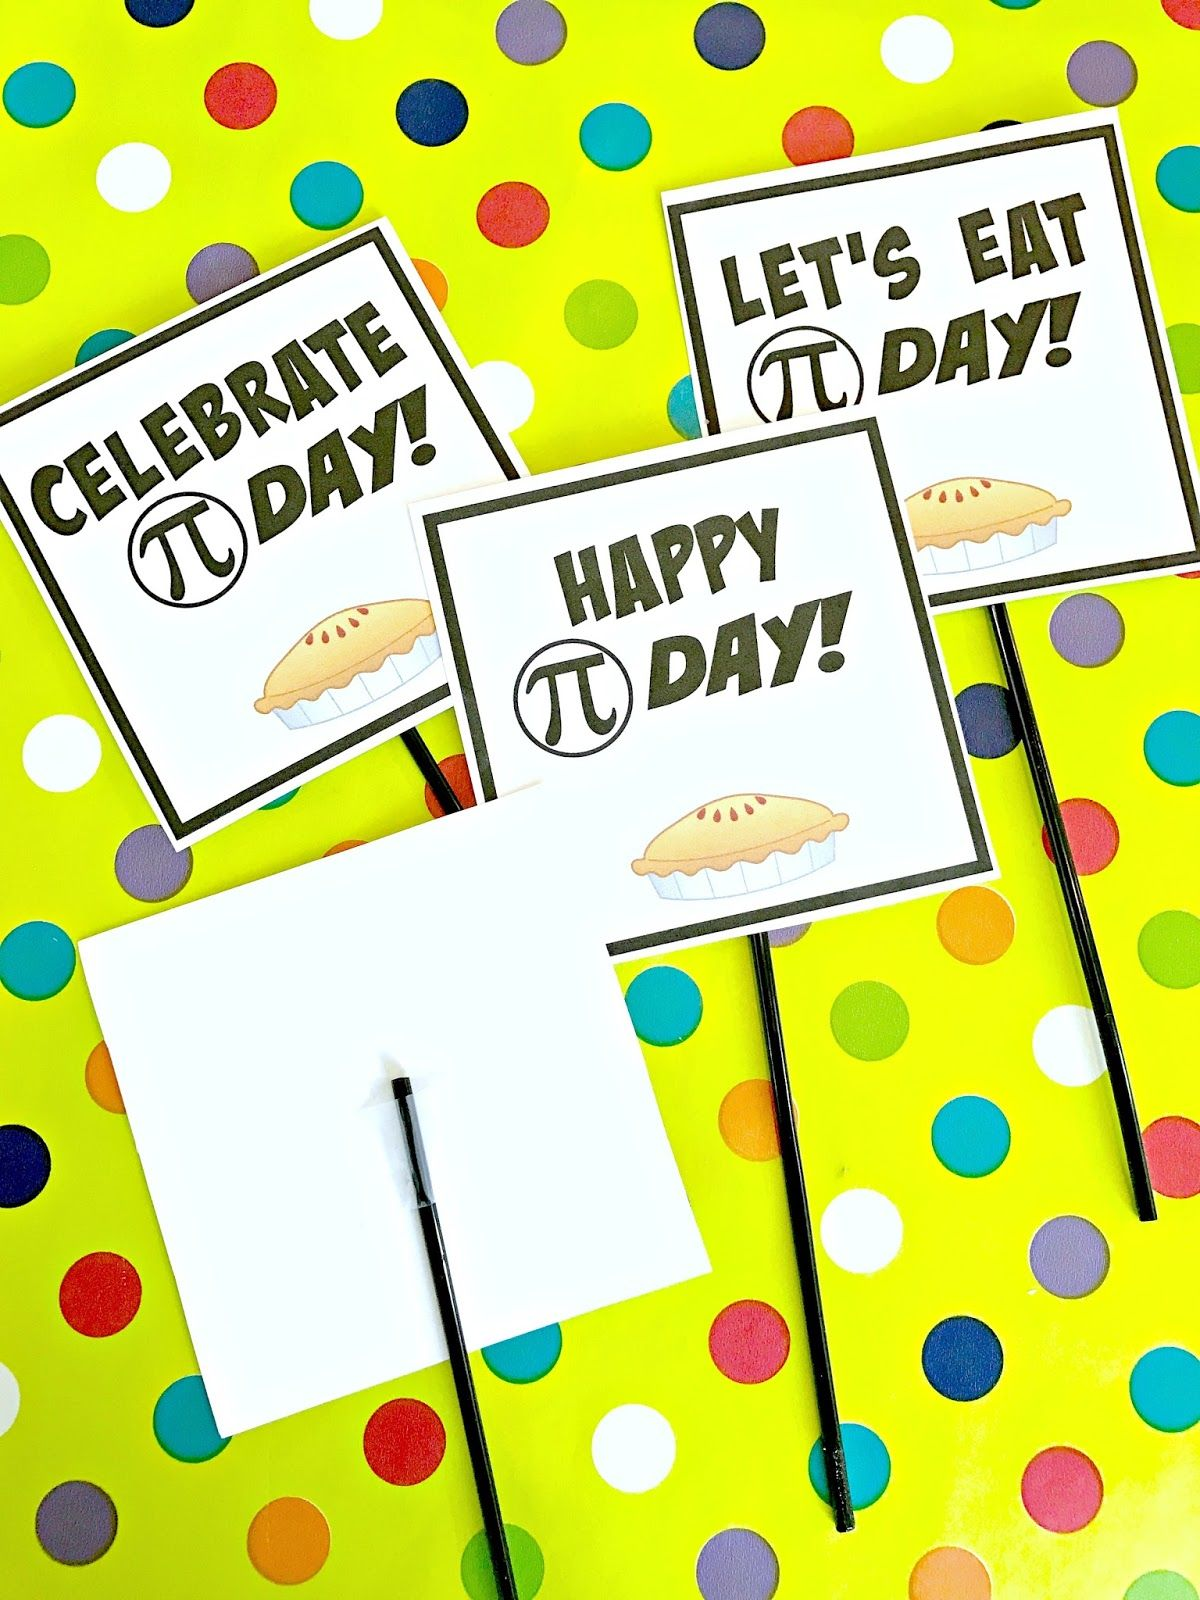 Michelle Paige Blogs Pi Day Party With Free Printables Pi Day Day Happy Day [ 1600 x 1200 Pixel ]